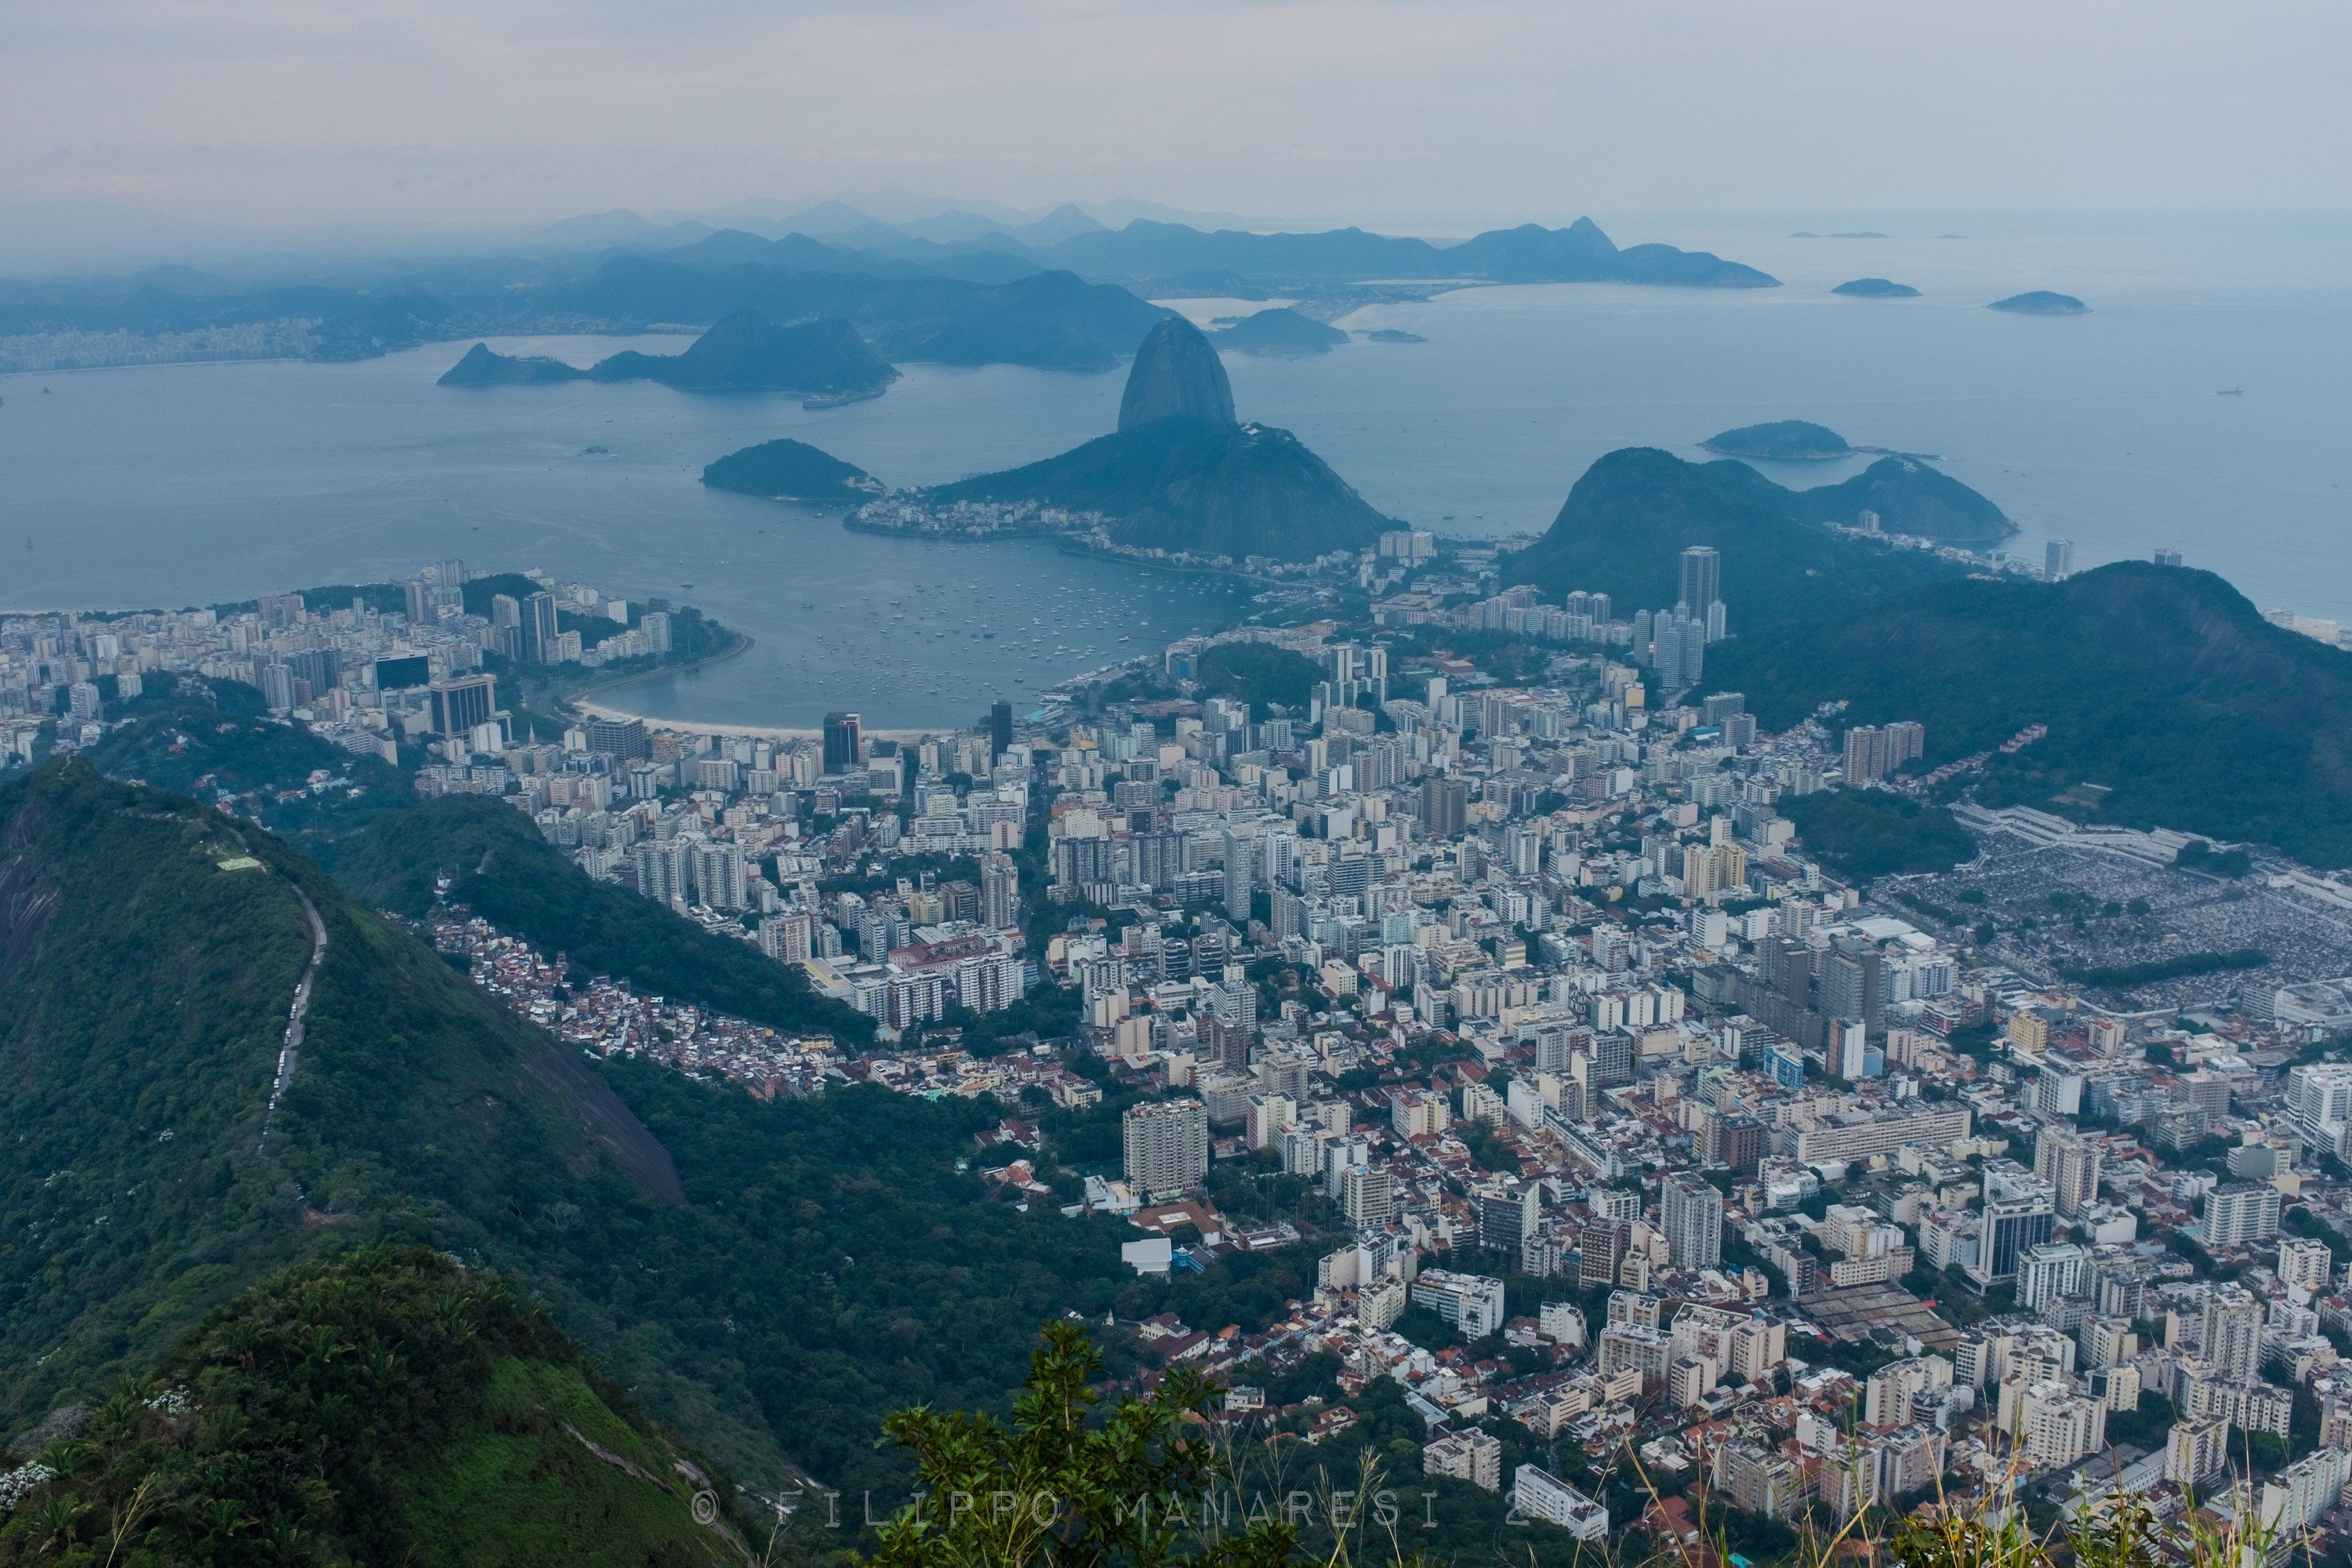 Botafogo   Wallpapers backgrounds and more 3000x2000